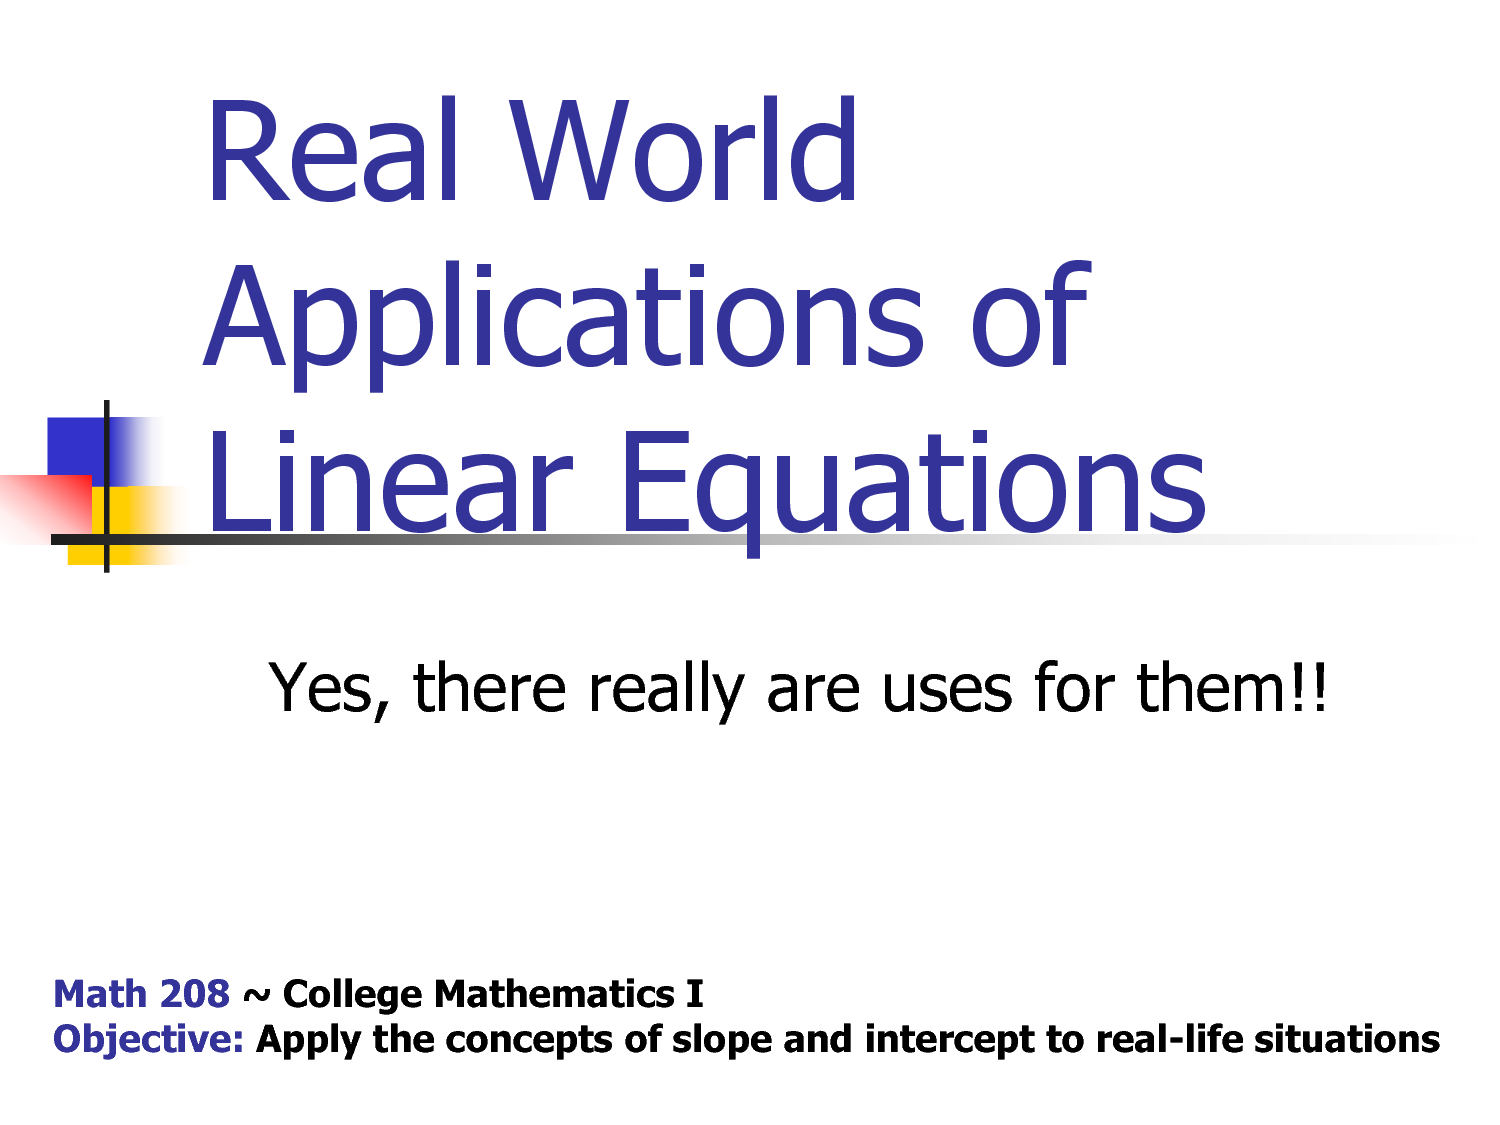 Real World Linear Equations